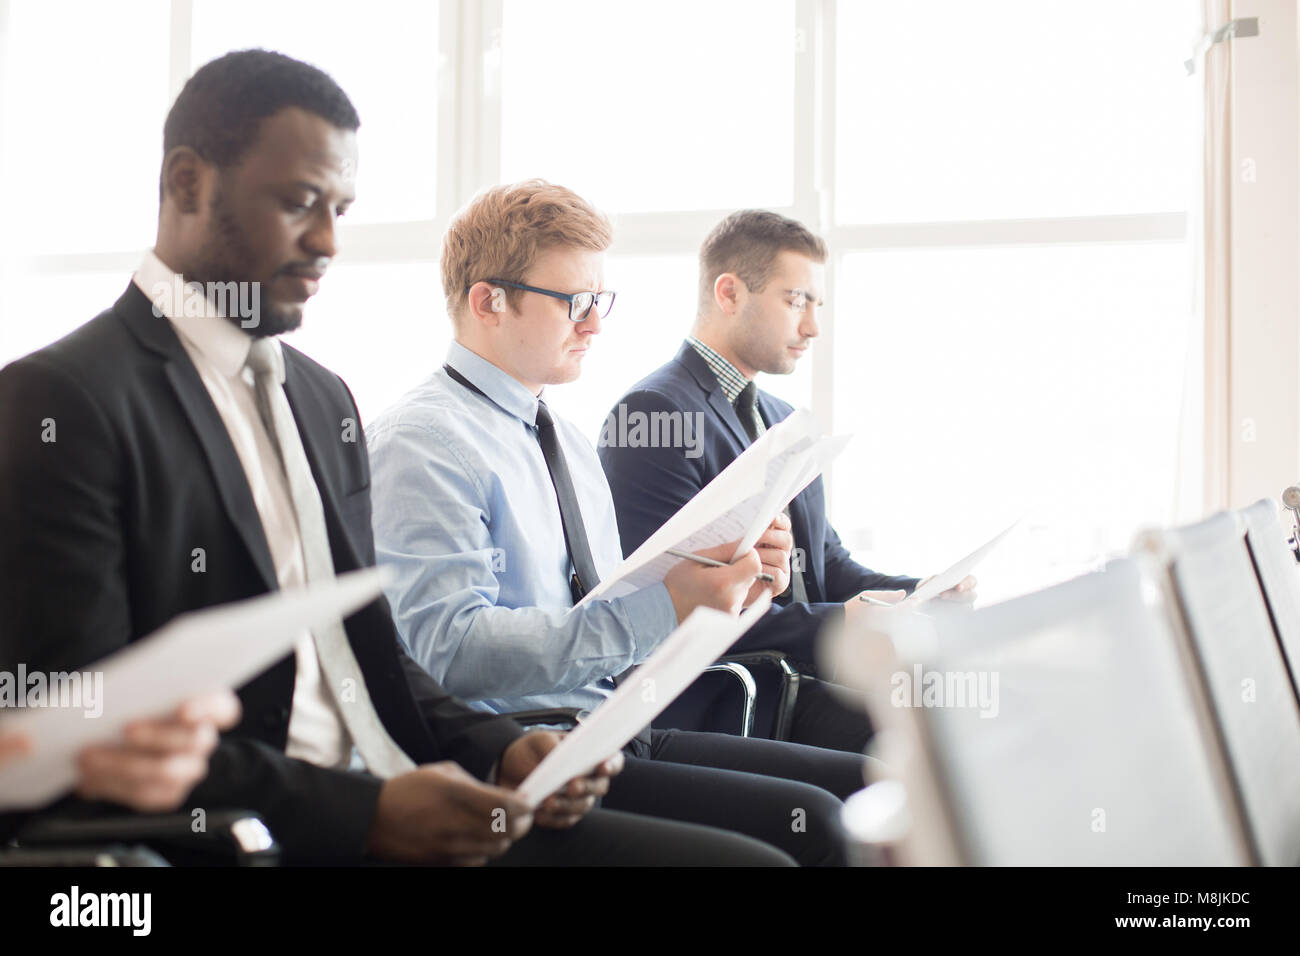 Men reading papers - Stock Image